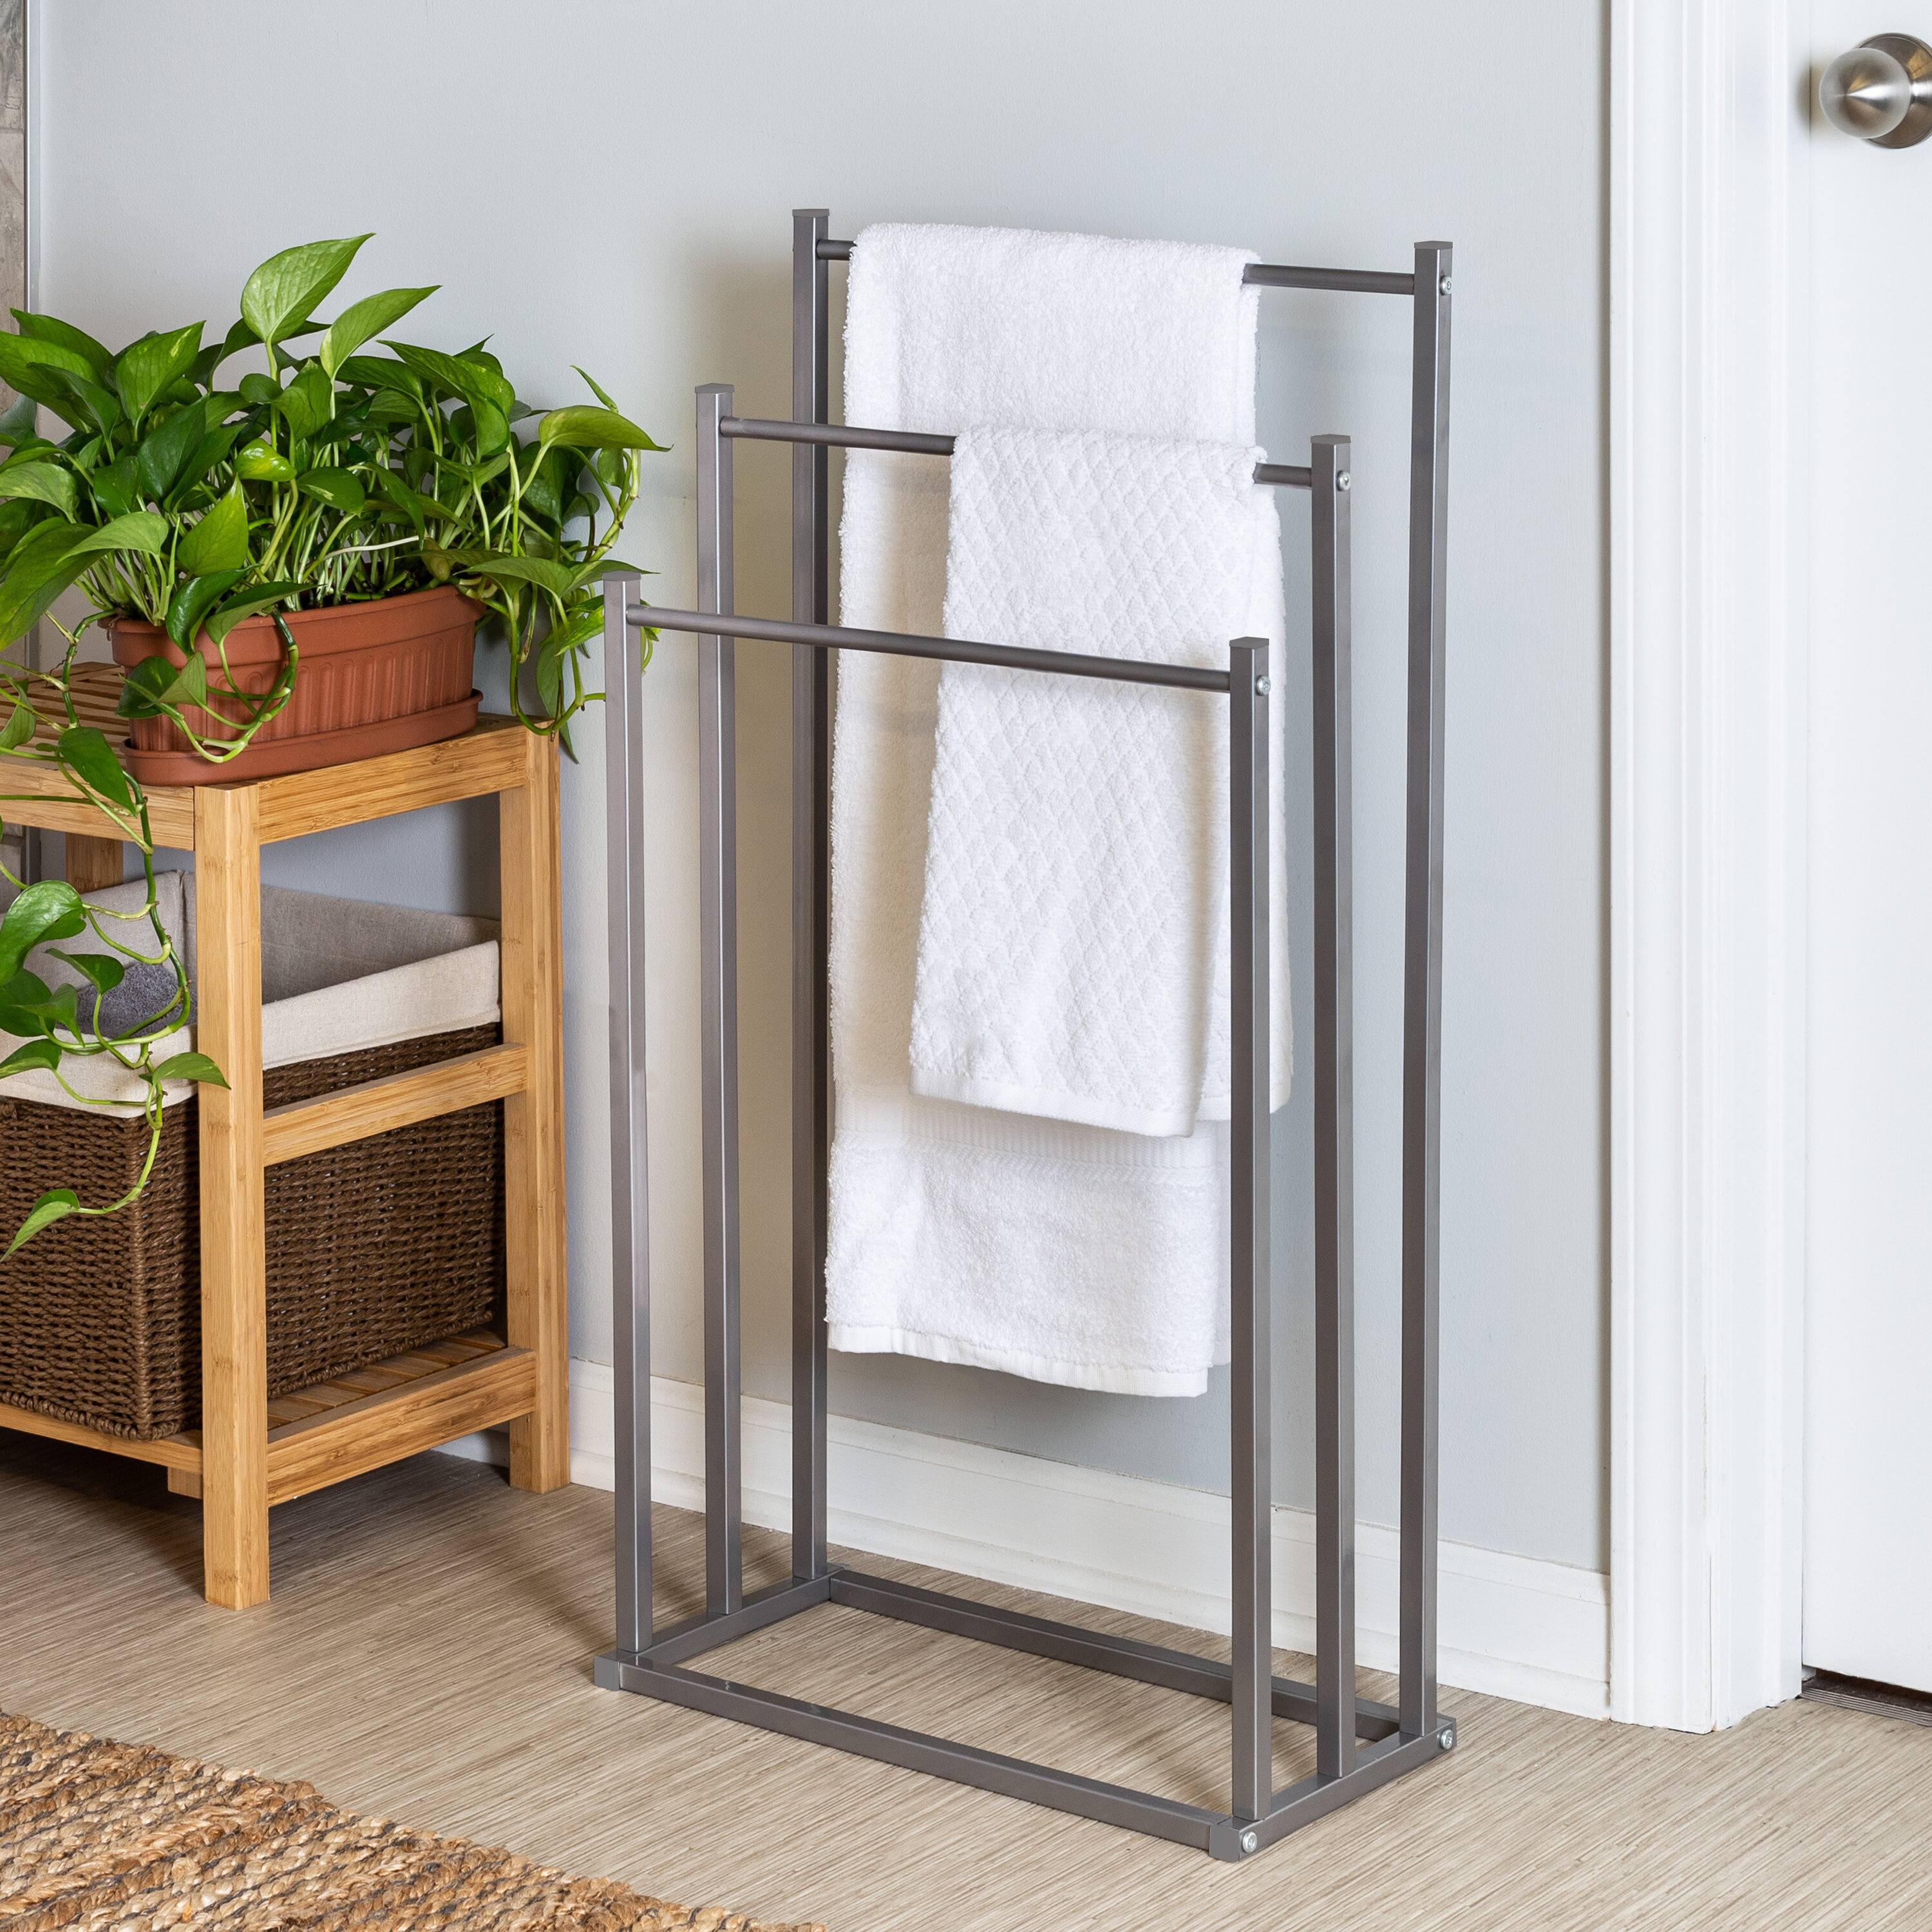 3 Tier Steel Bathroom Free Standing Towel Rack